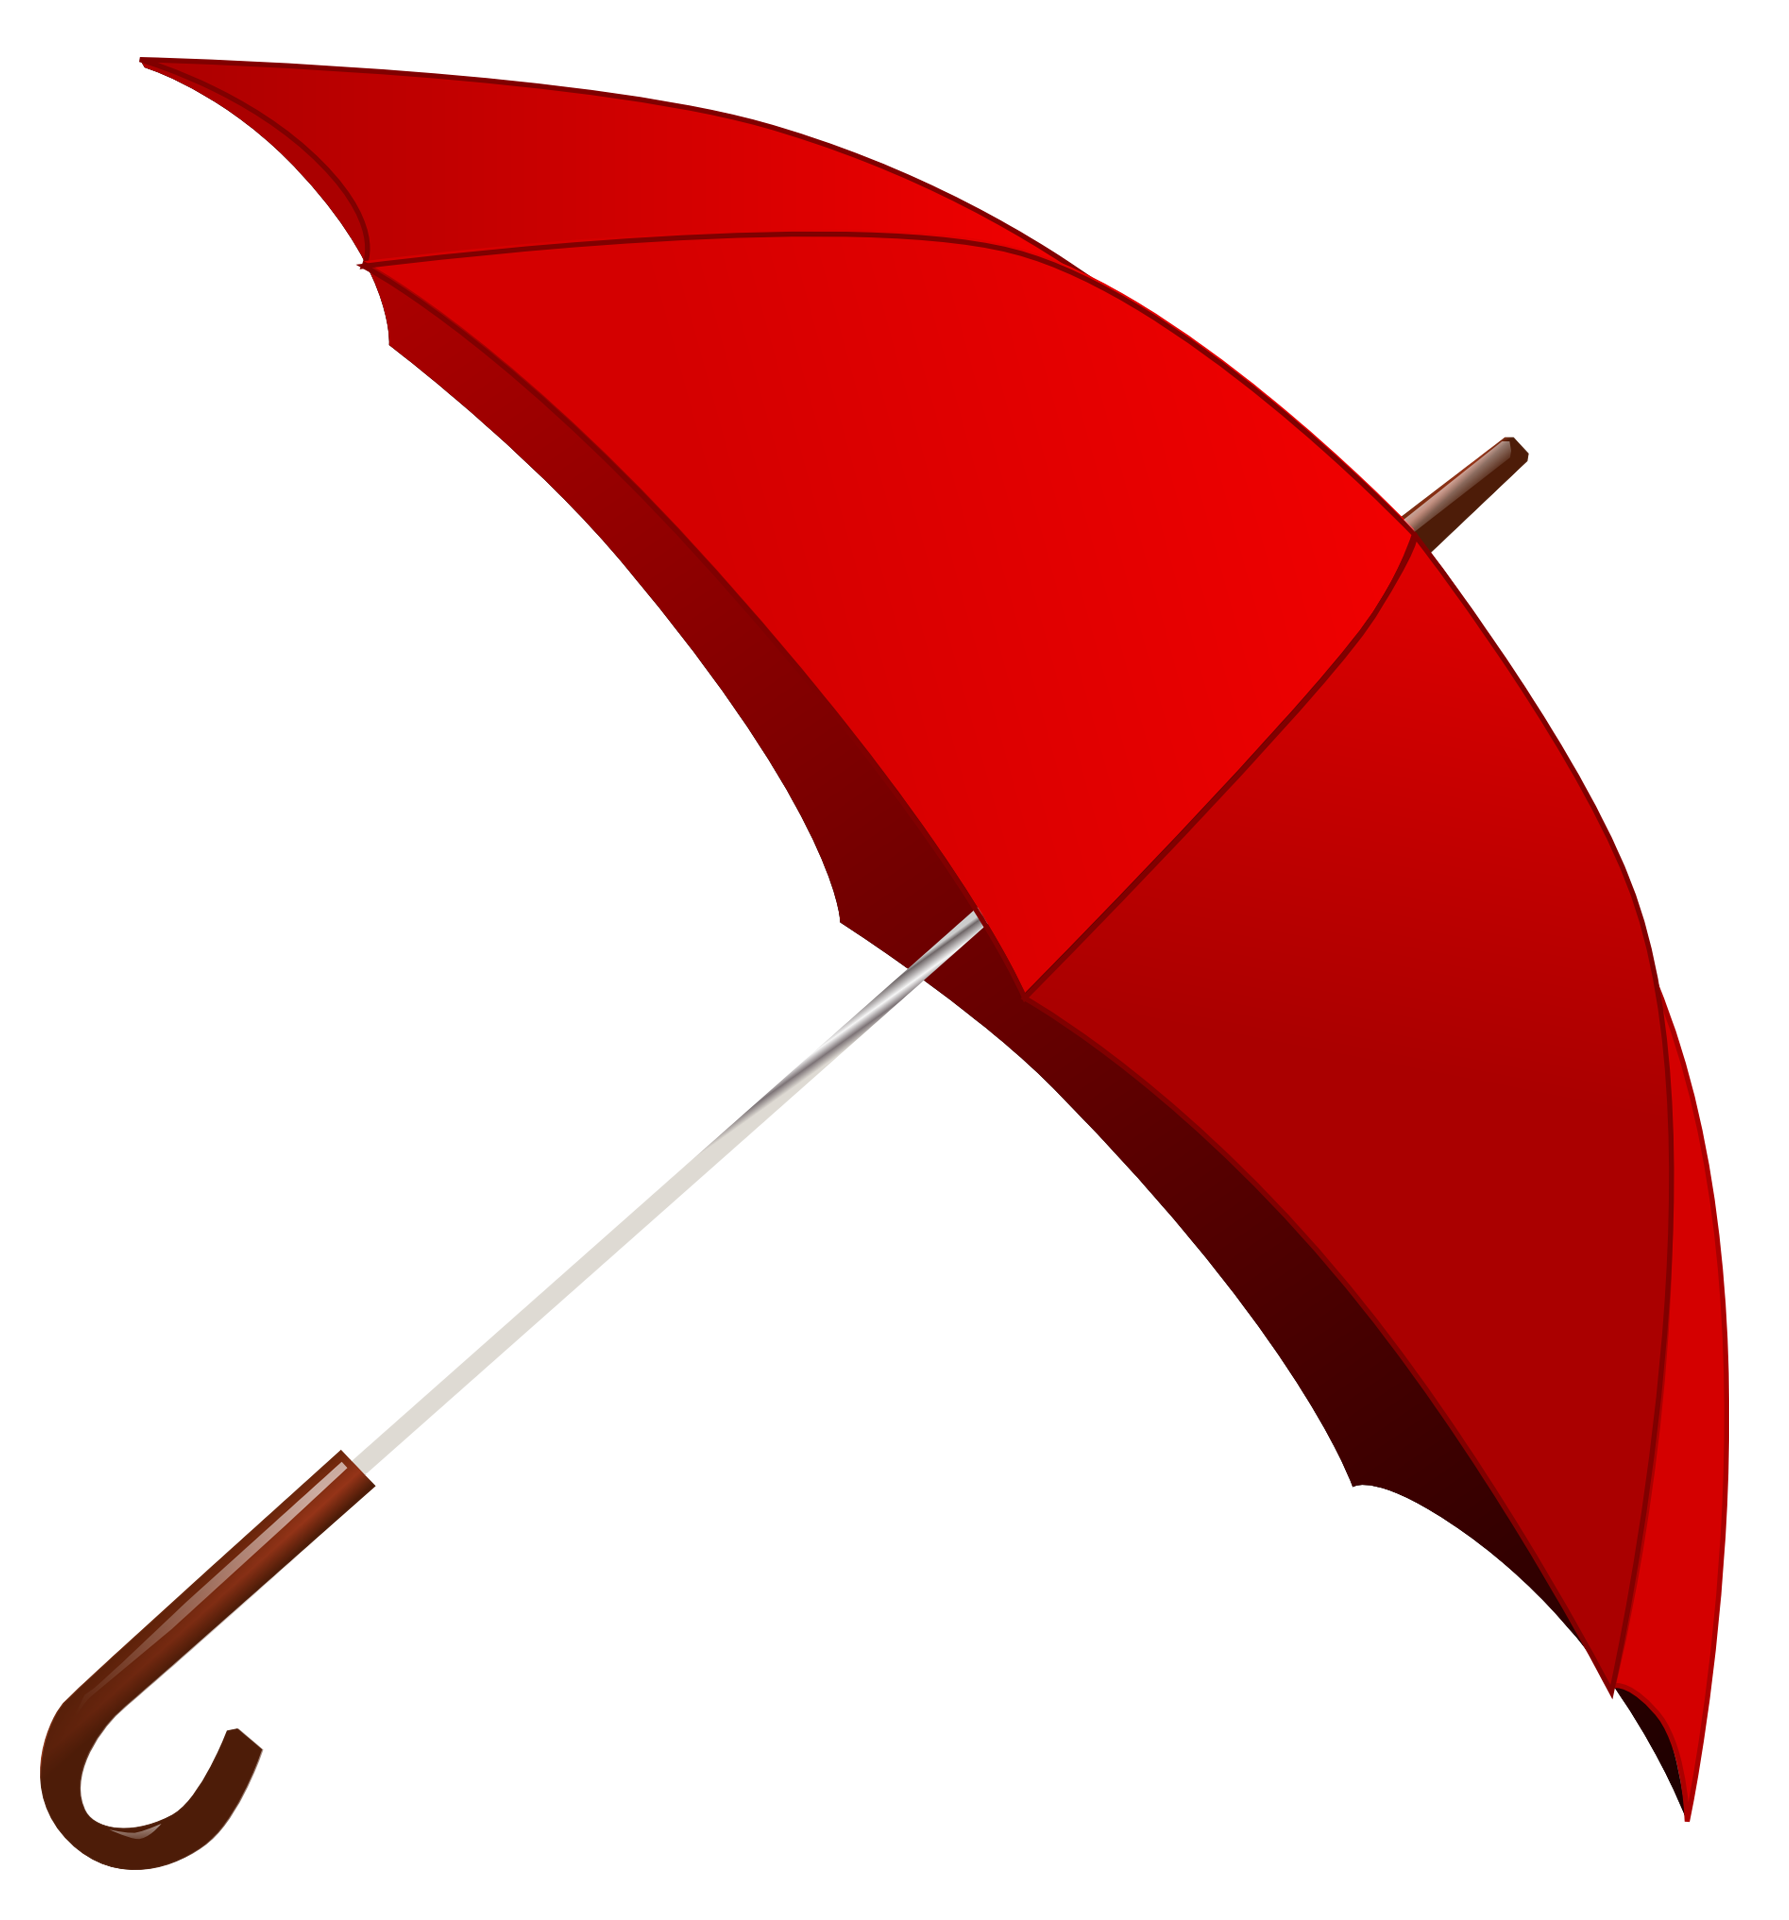 Umbrella PNG - 26947